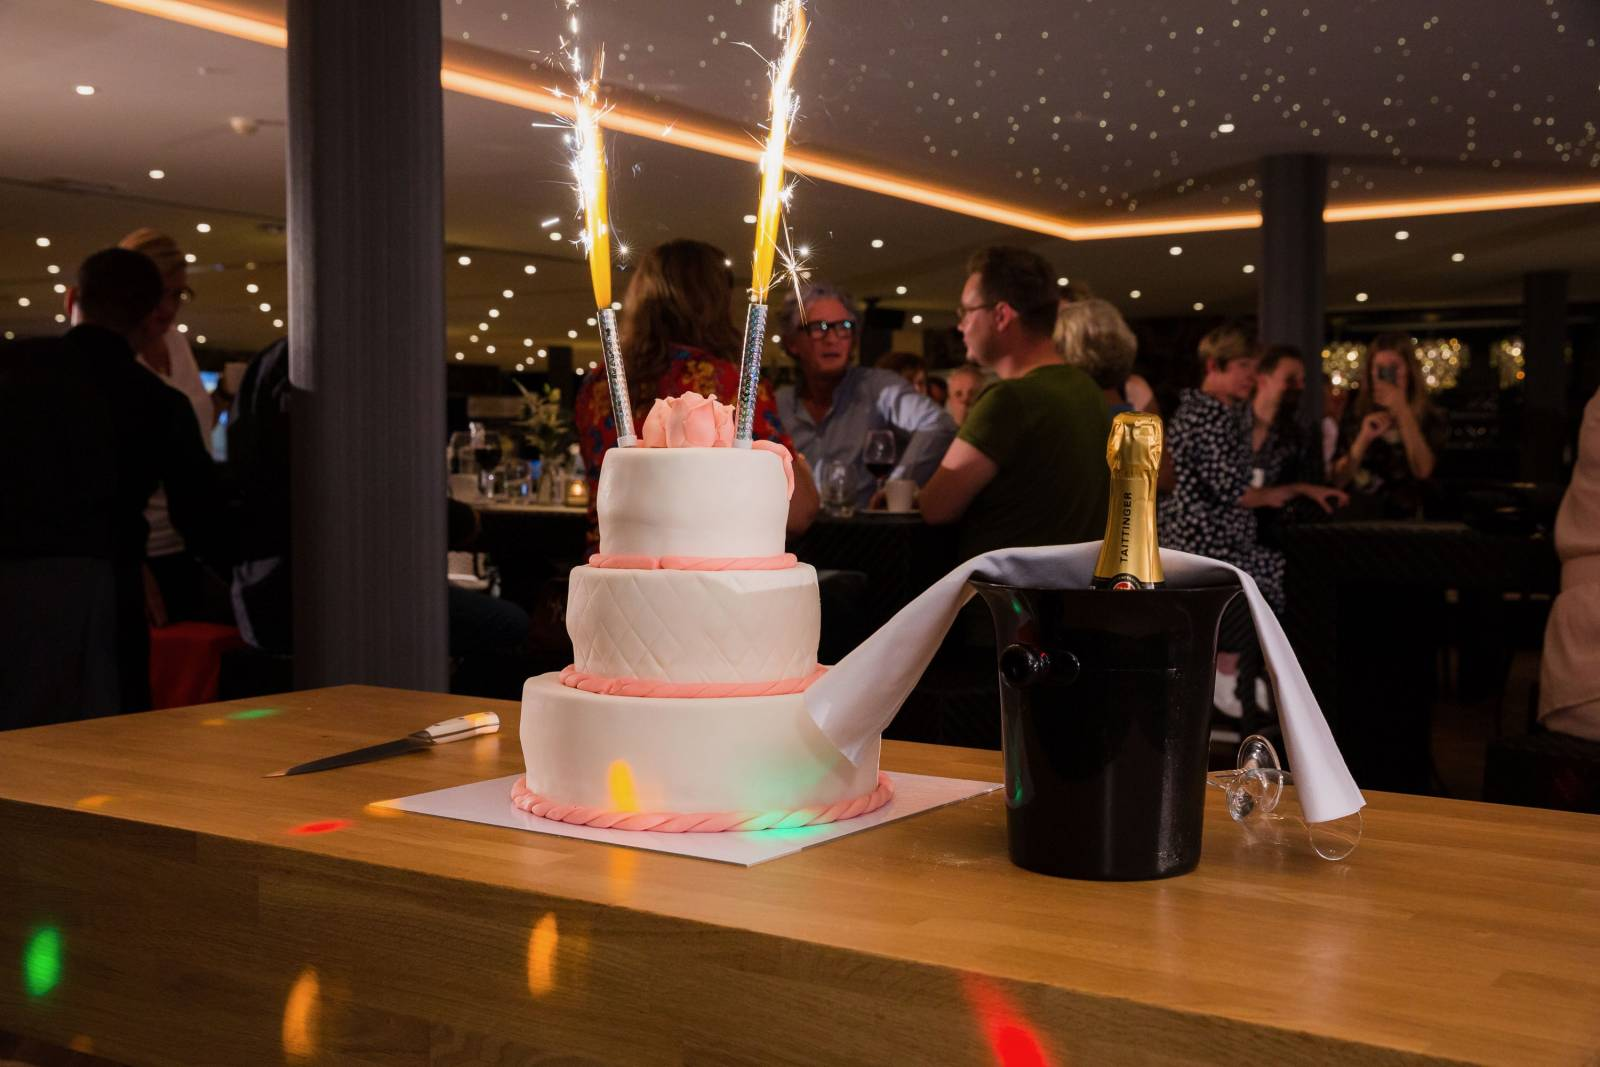 Van der Valk hotel Beveren - Feestzaal - Trouwzaal - House of Weddings - 23